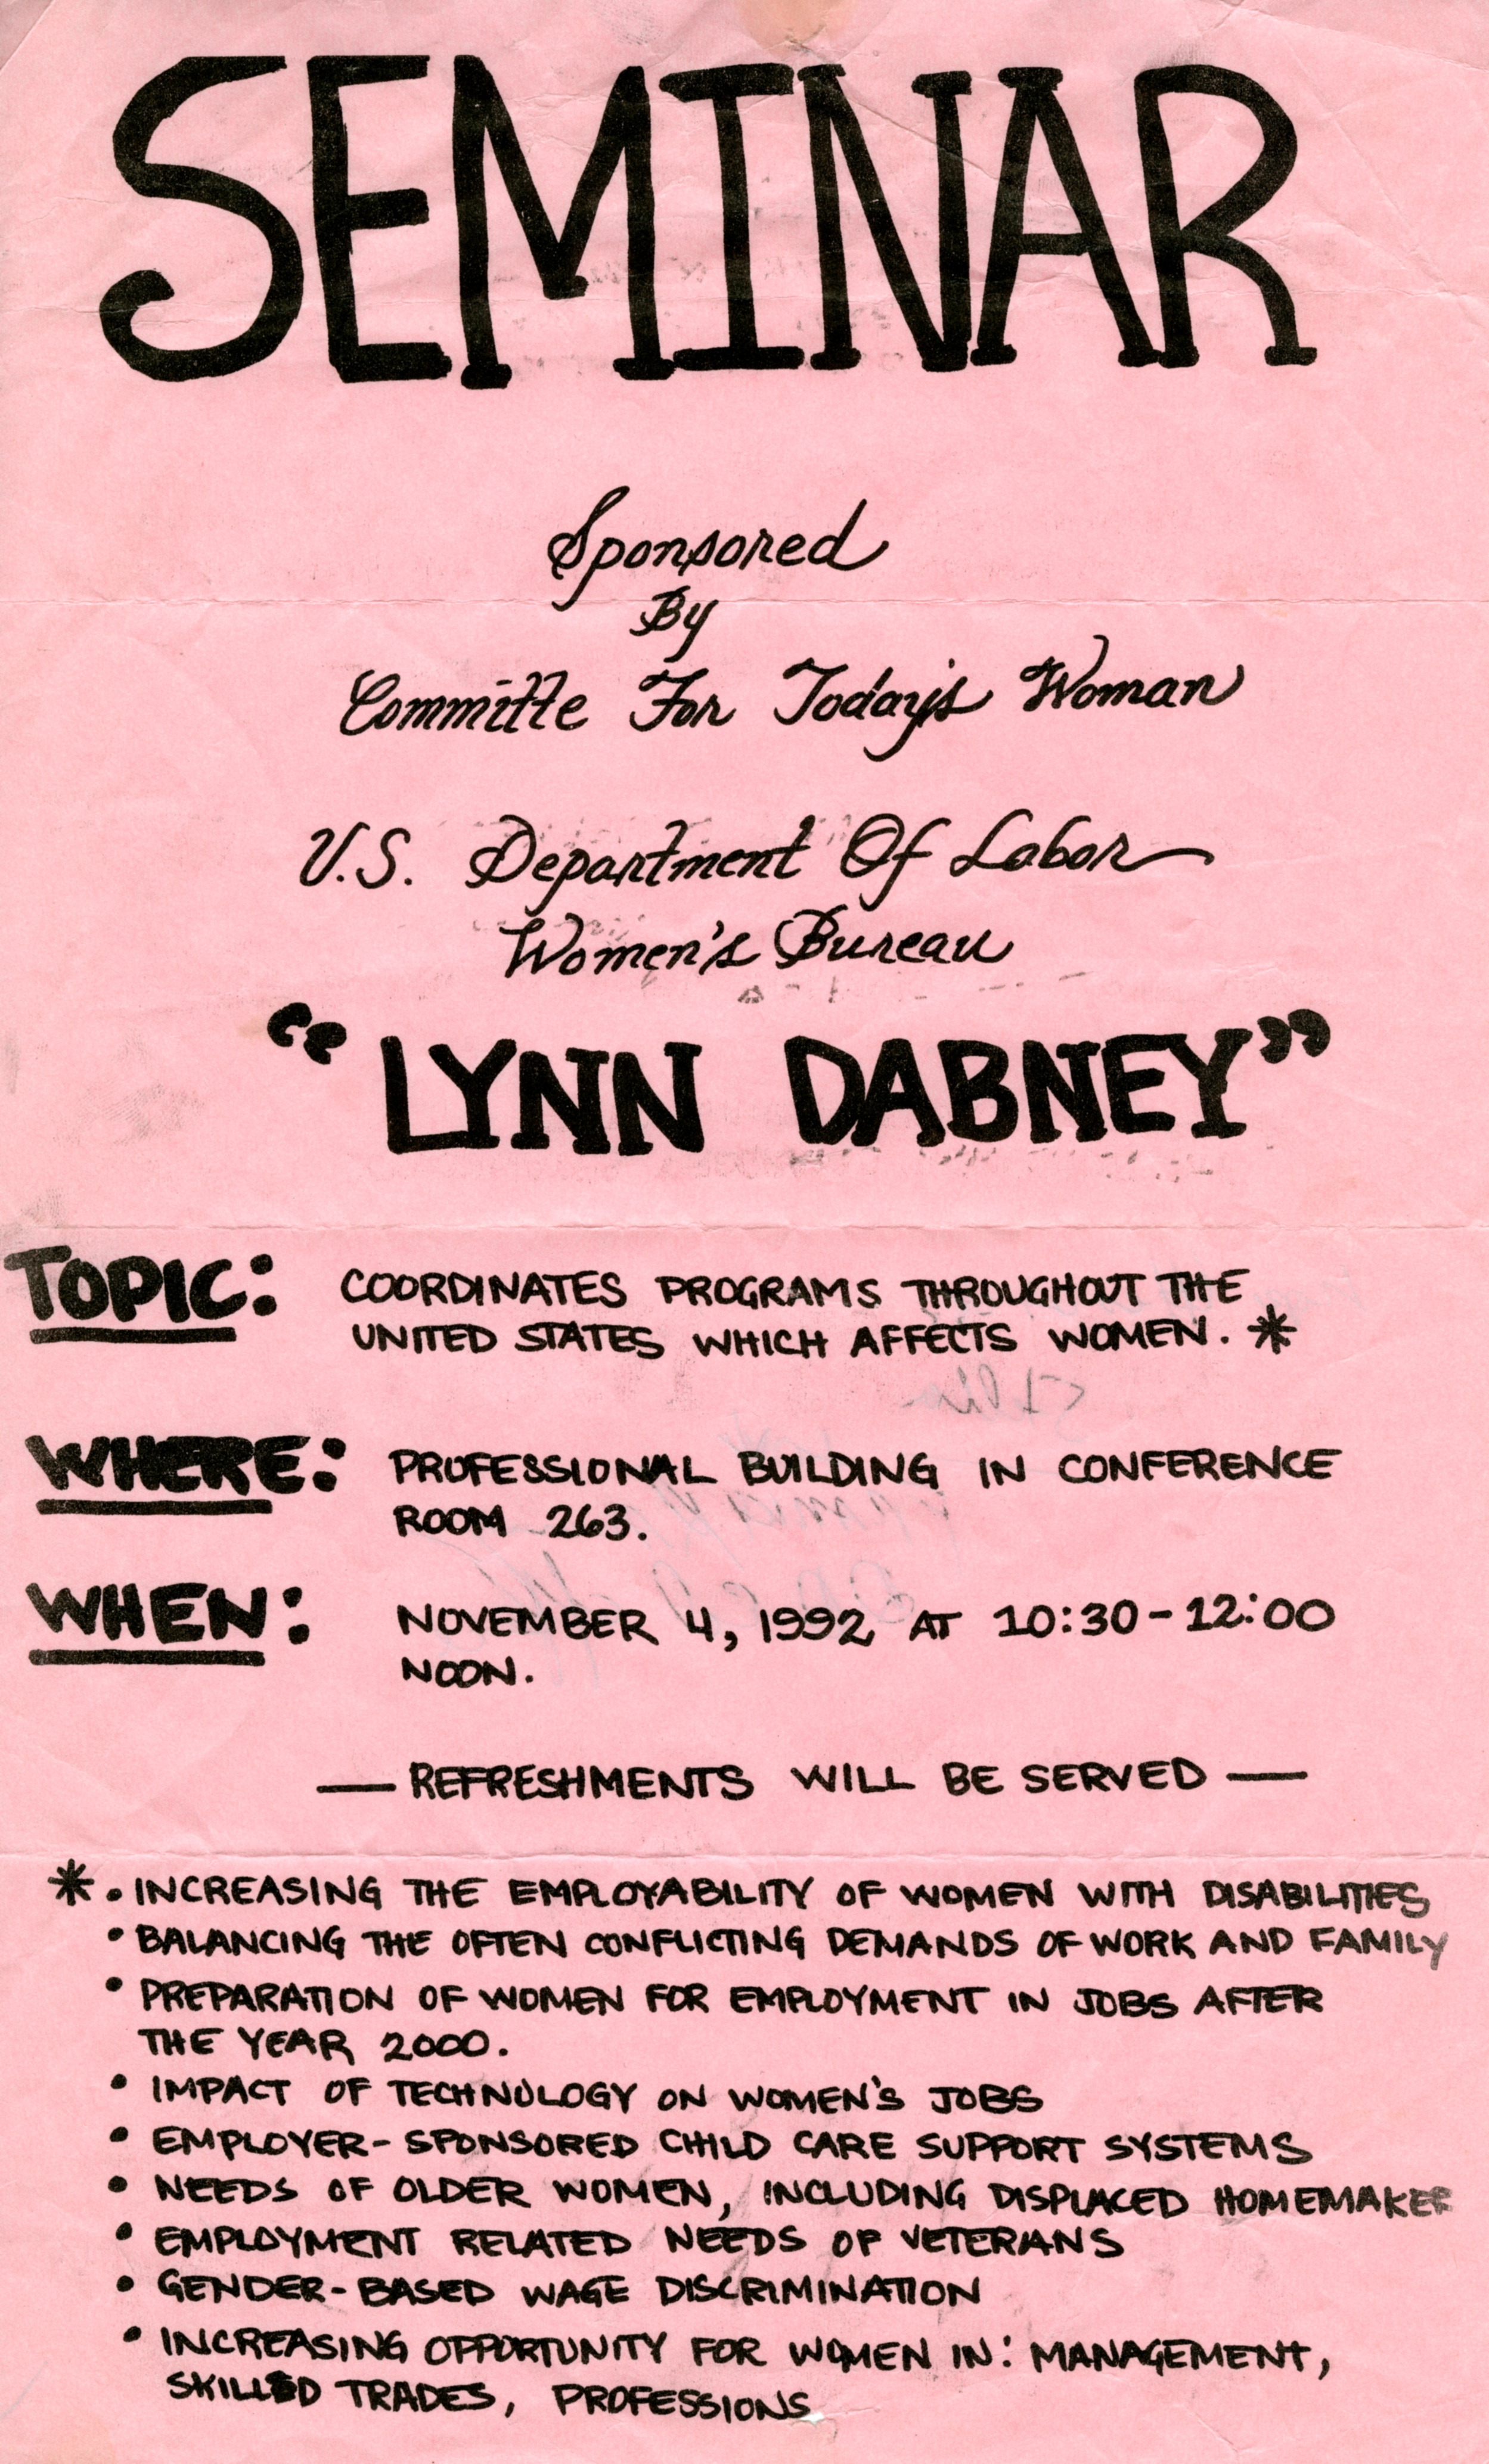 Flyer for Seminar by Lynn Dabney